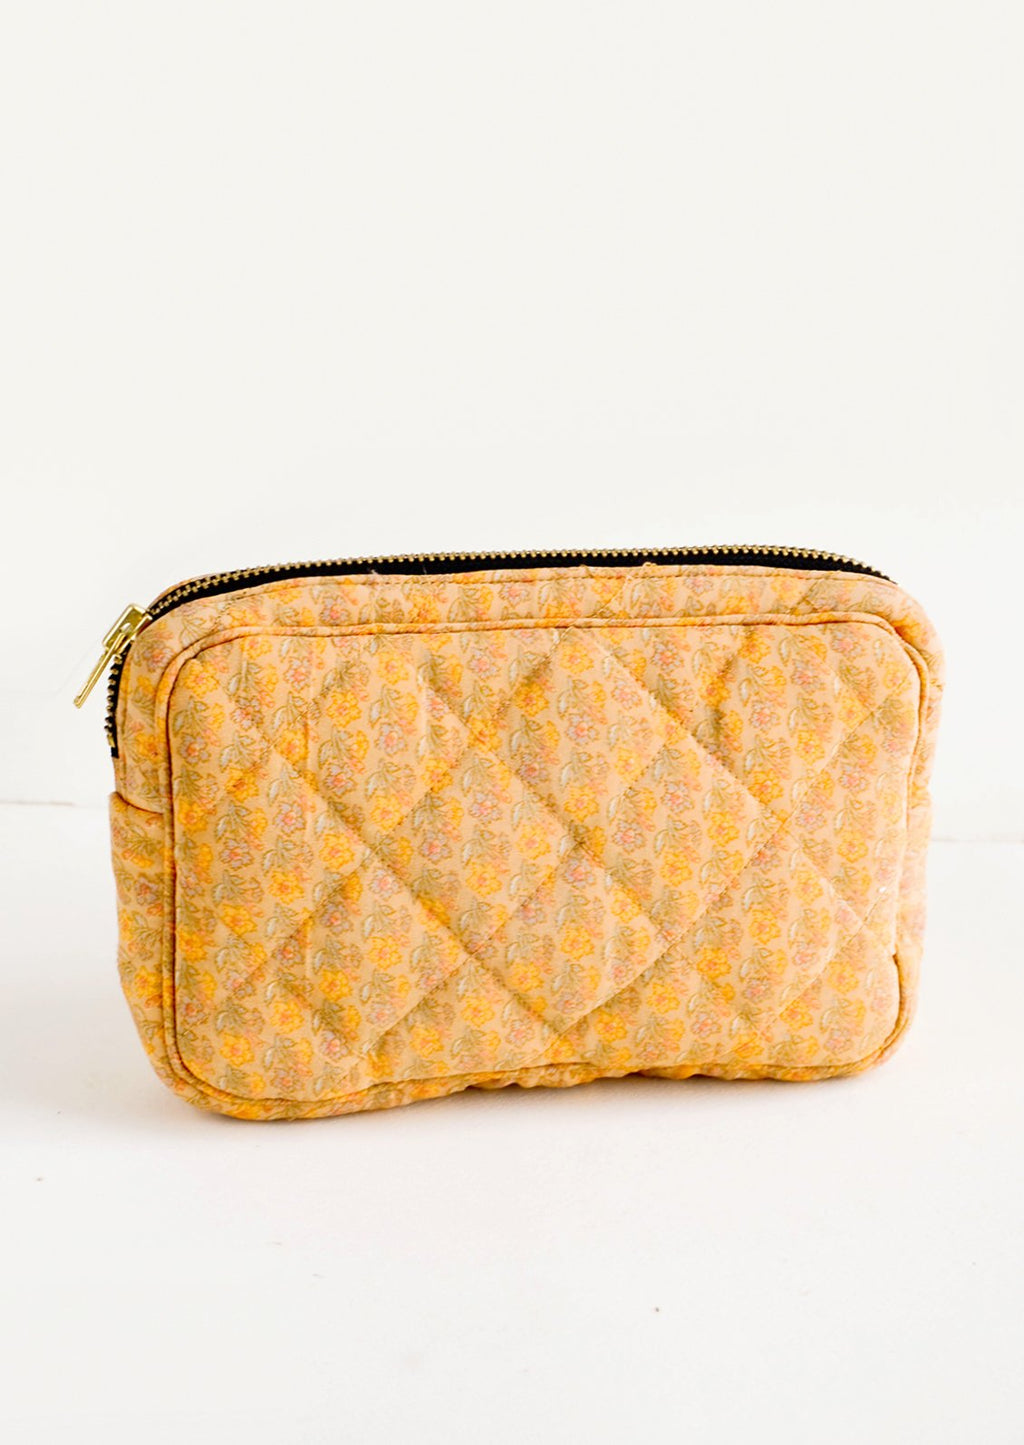 Small / Dainty Peach Floral: Flat and rectangular makeup travel bag with zip closure in yellow and peach floral